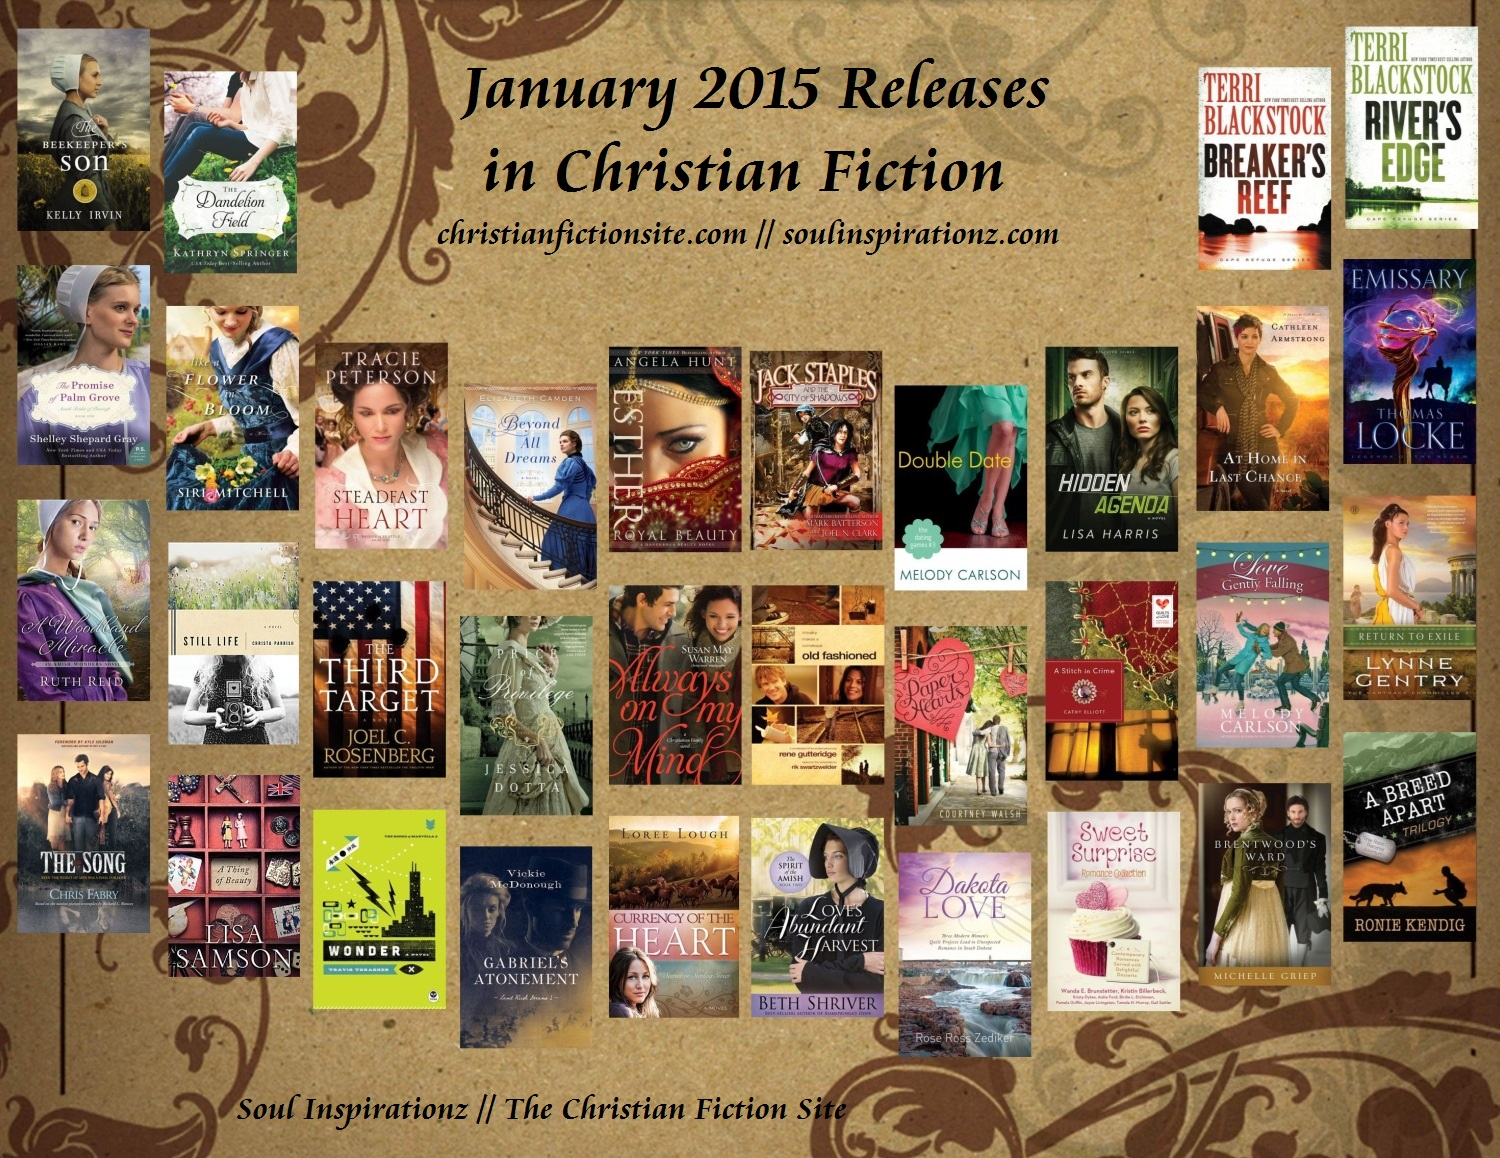 January 2015 Christian Fiction